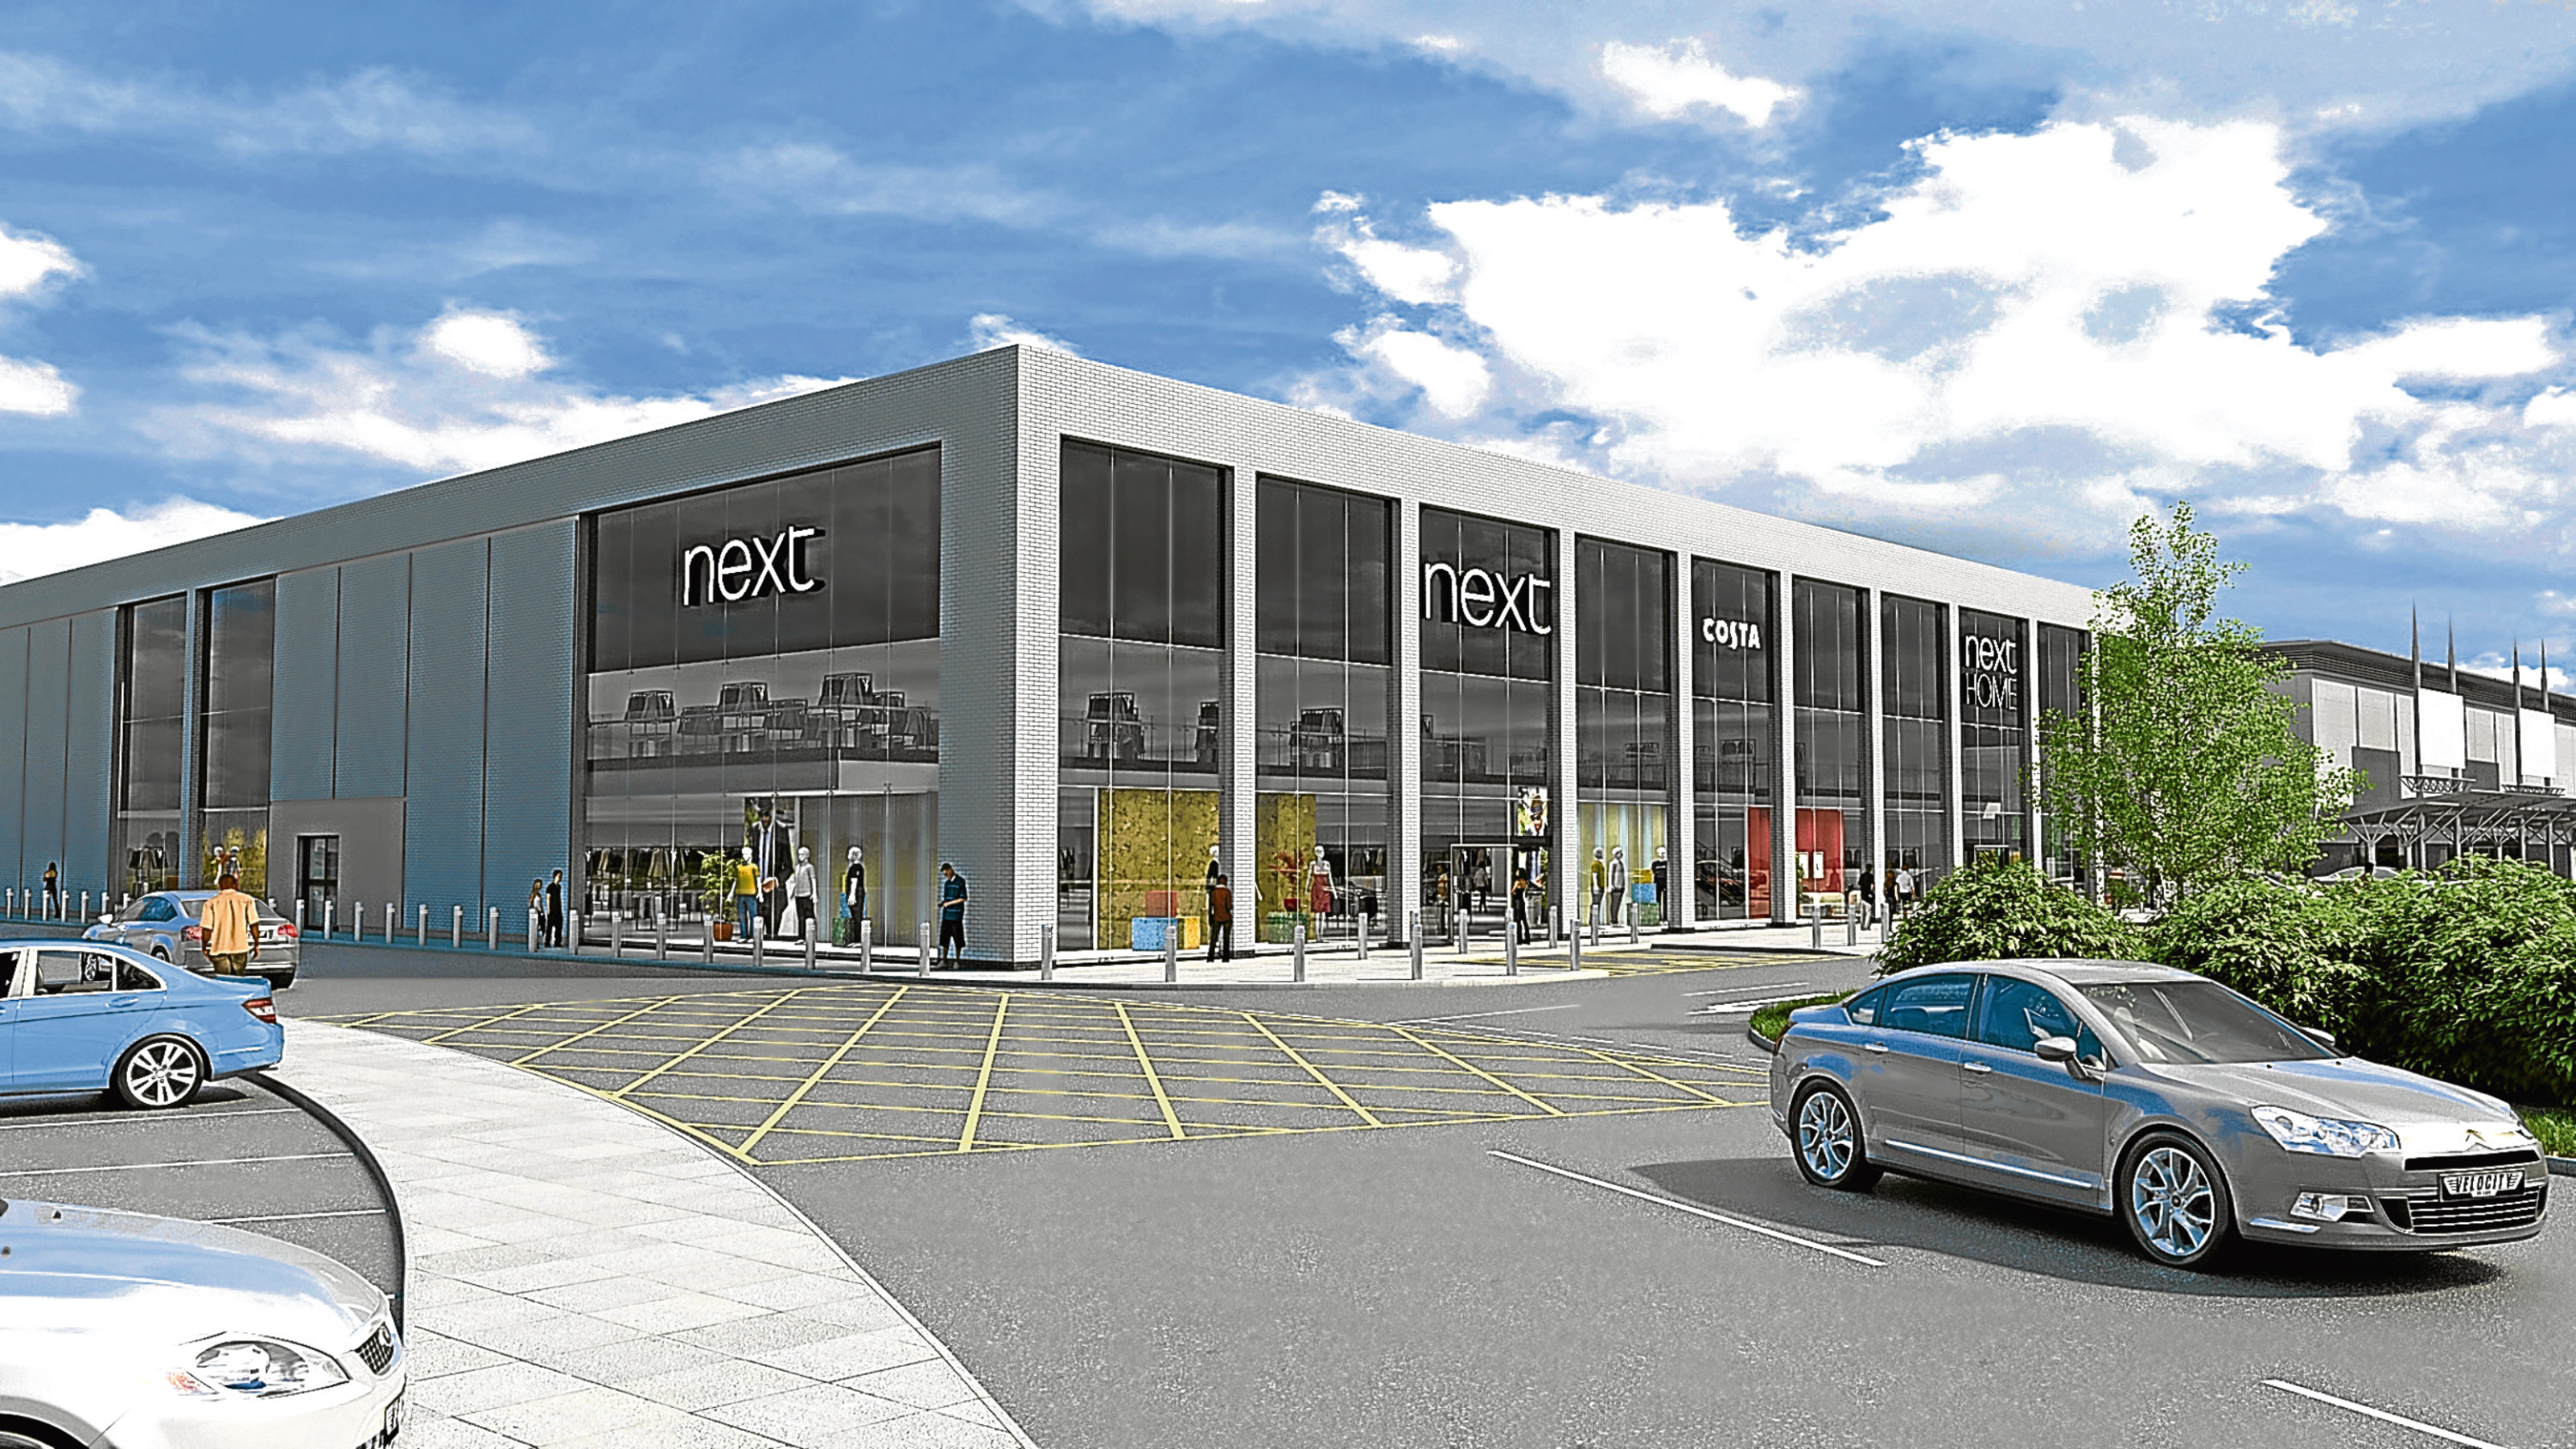 An artist's impression of the proposed £5.4 million store at Kingsway West Retail Park. On Monday night, councillors rejected the plans by 16 votes to 11.